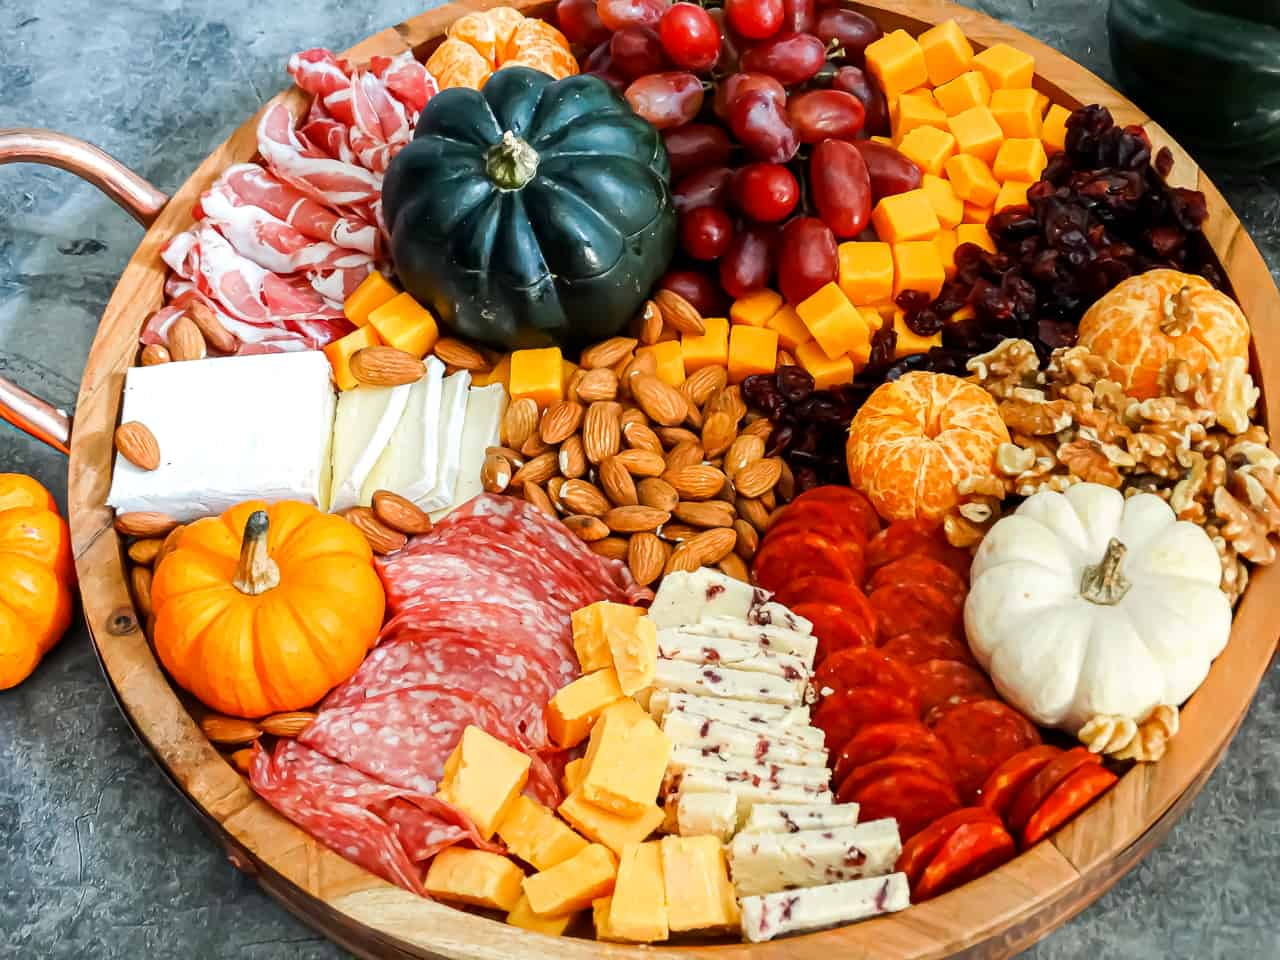 A Thanksgiving charcuterie board filled with nuts, cheese, pumpkins, and grapes